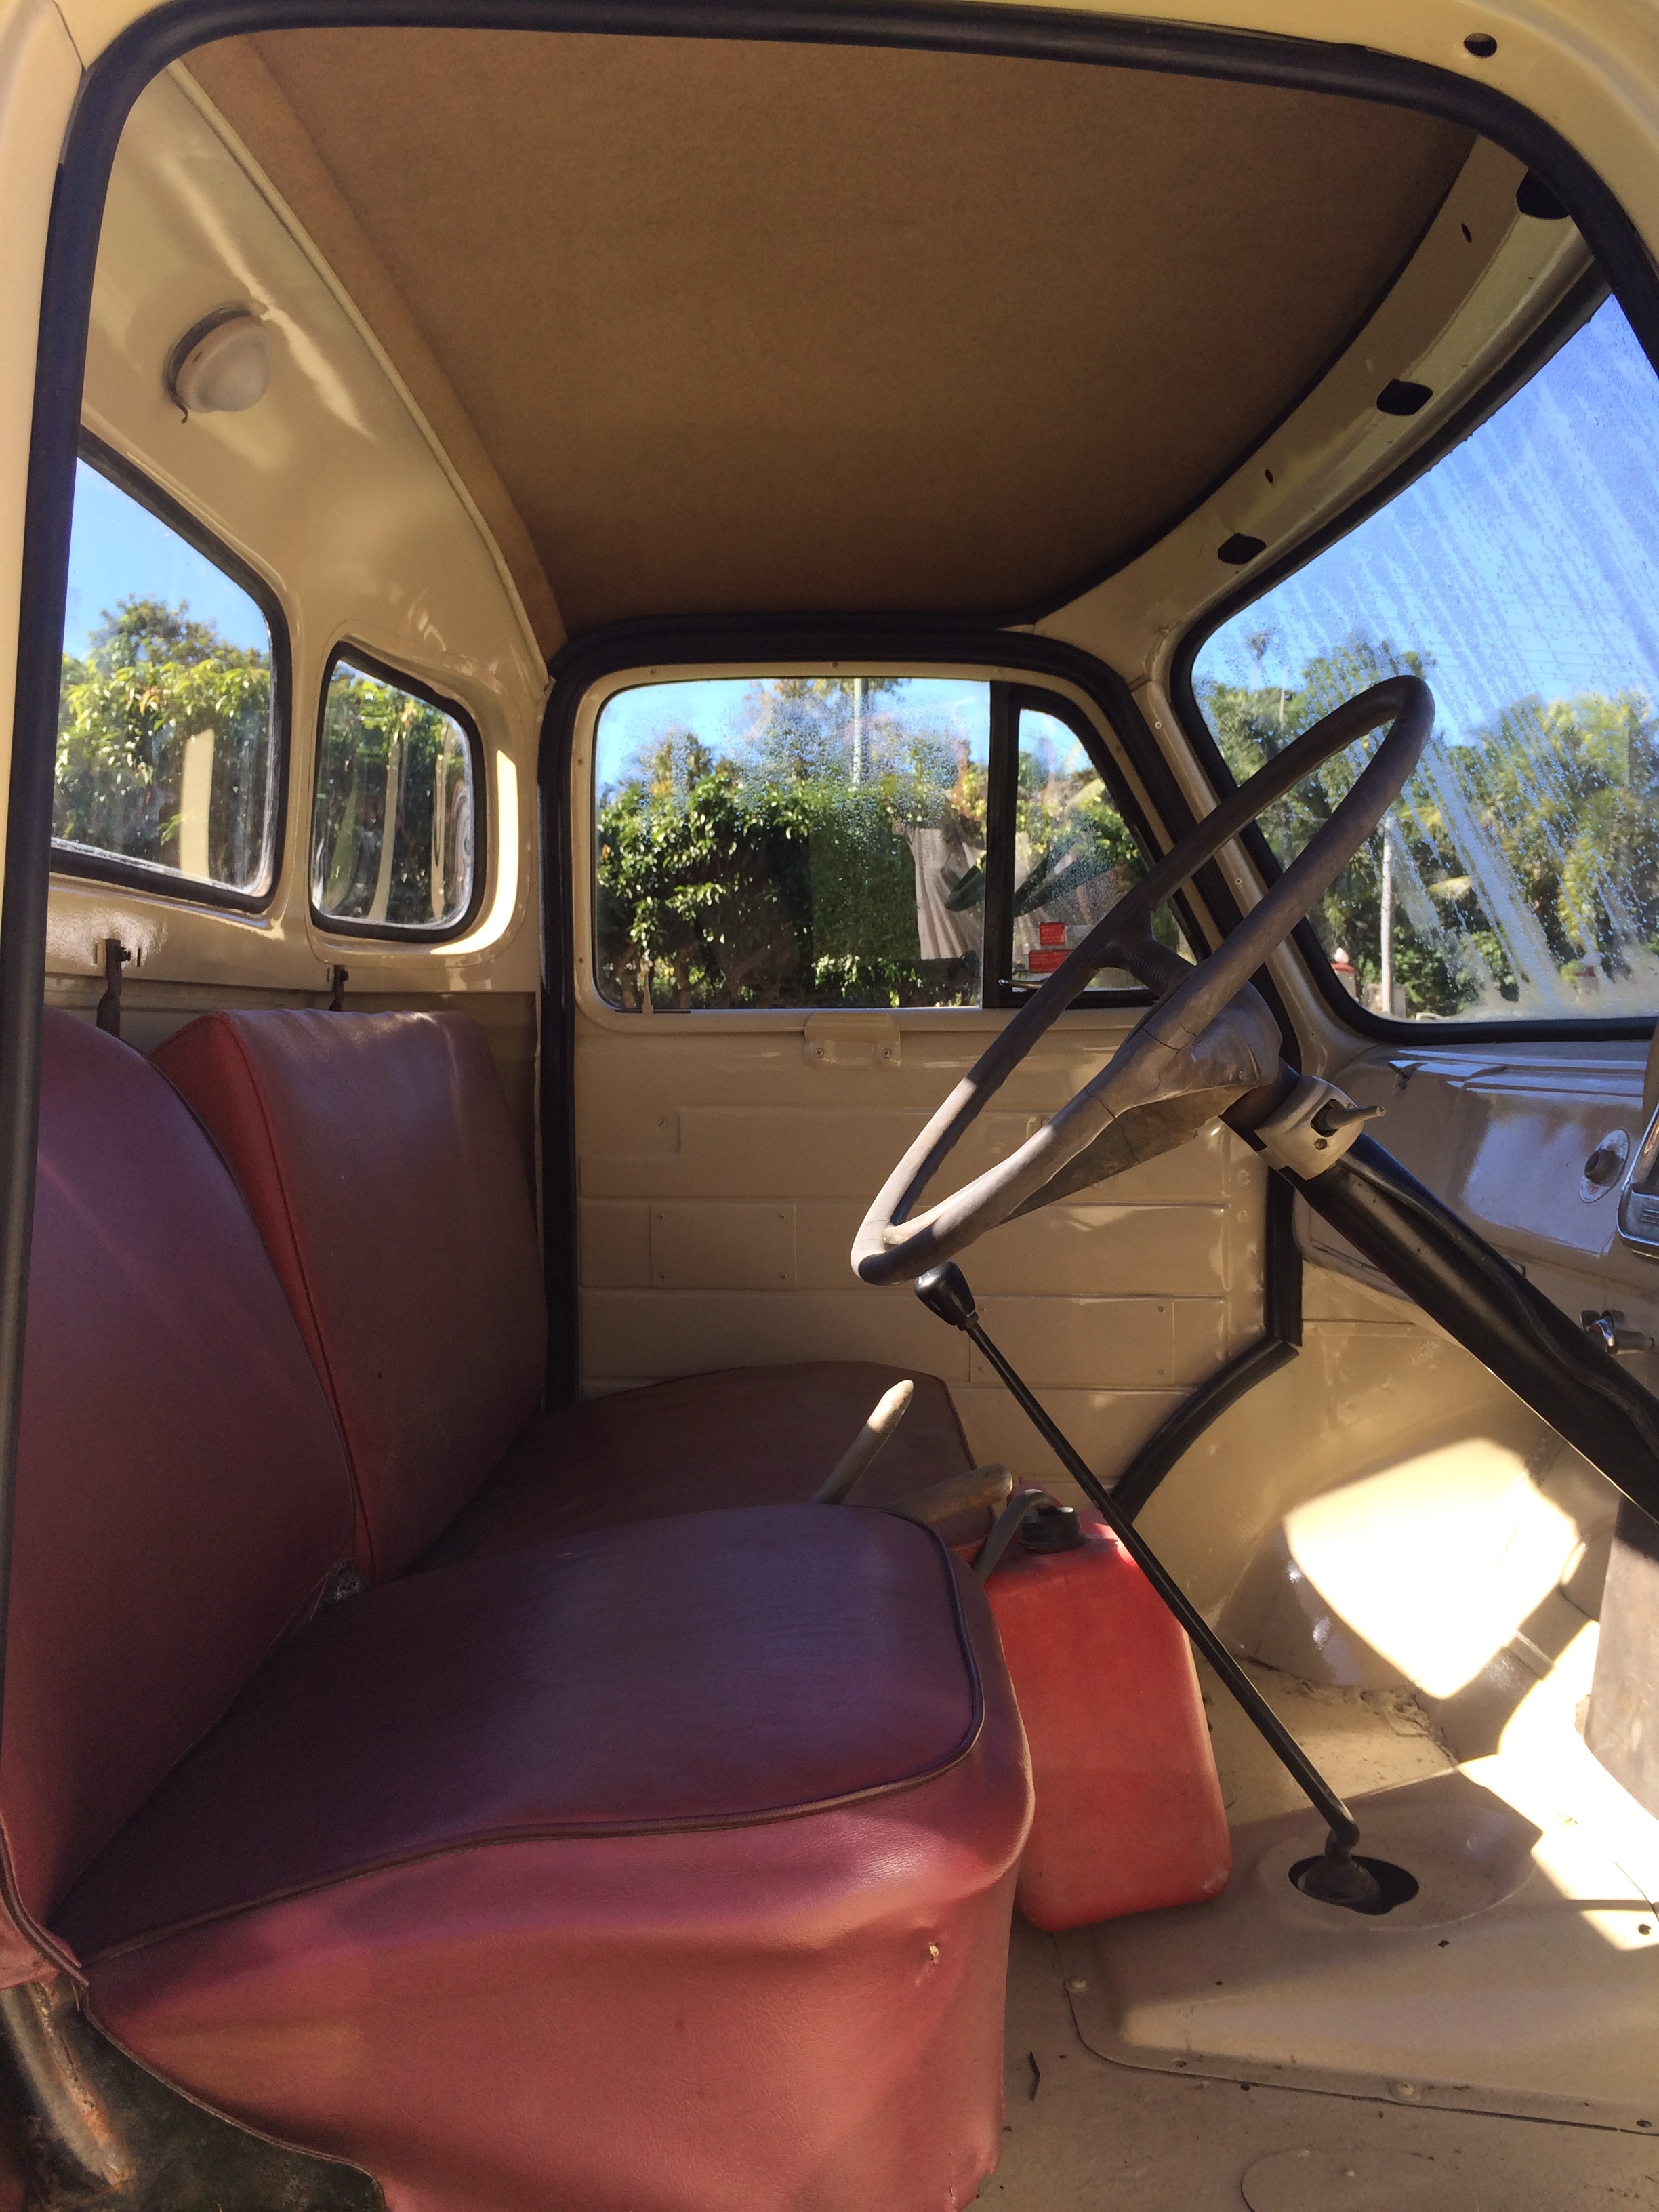 Interior of cab after restoration